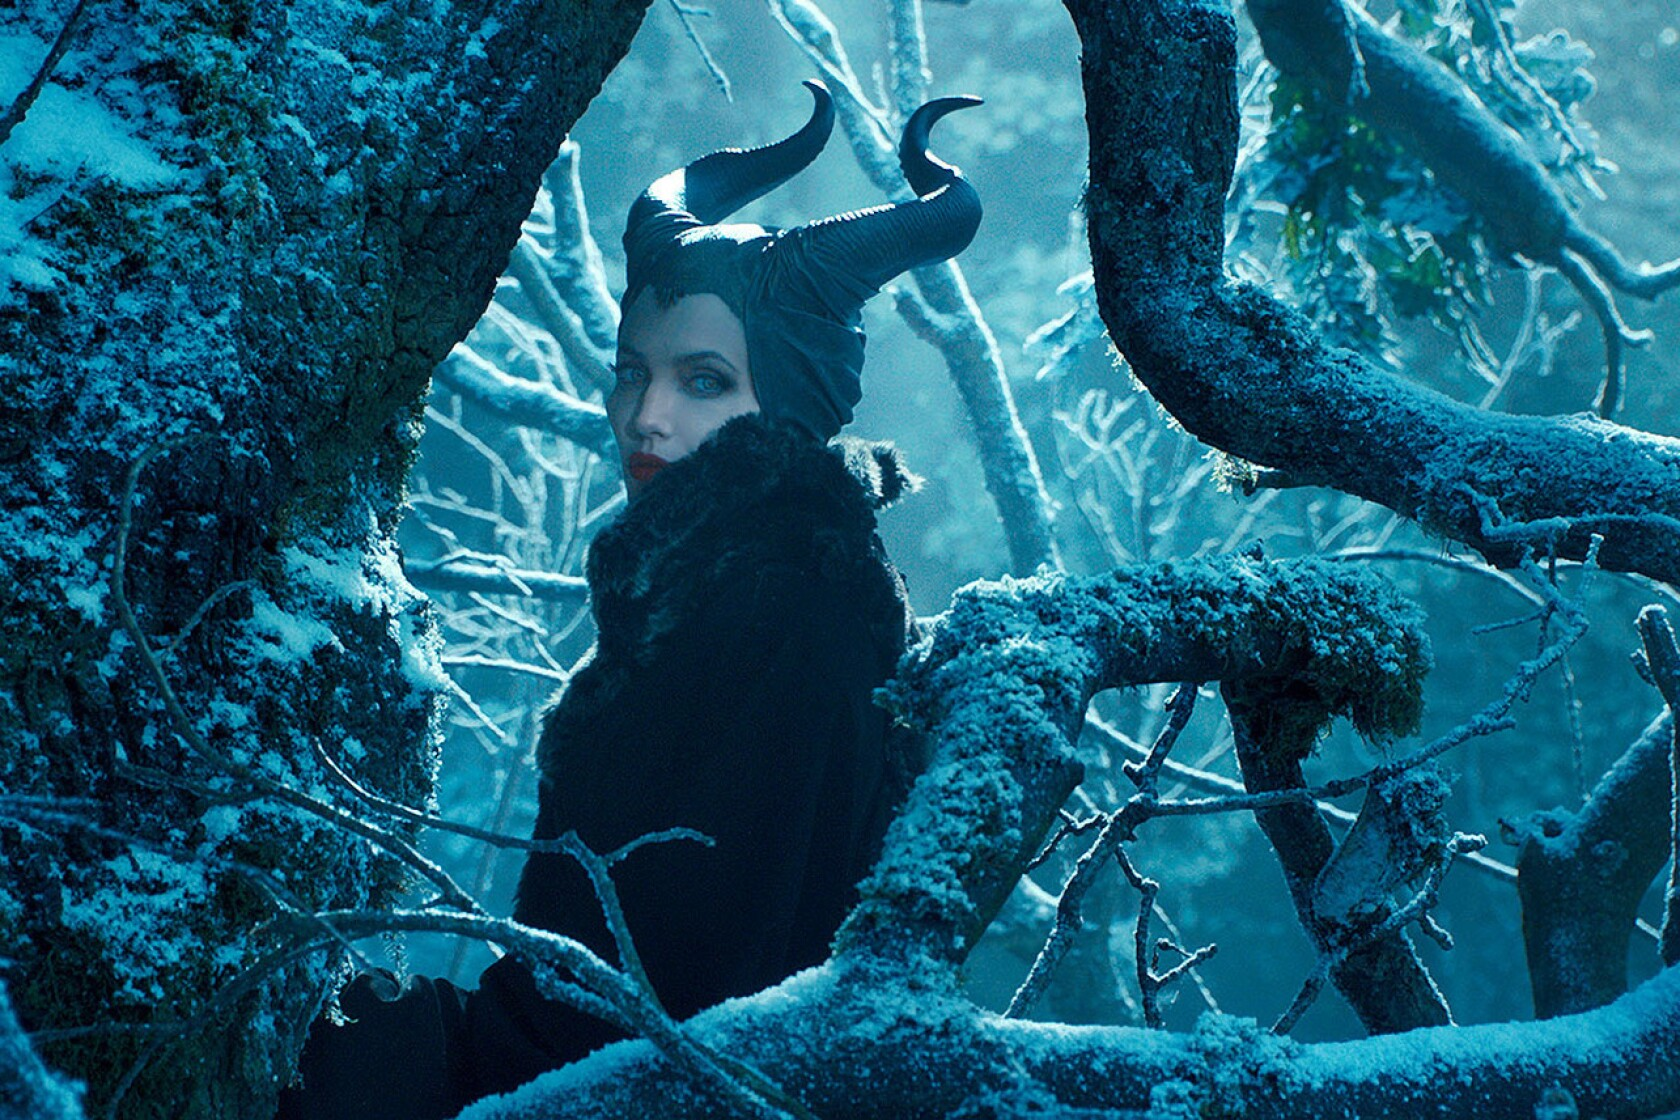 Watch Angelina Jolie in the 'Maleficent' trailer just released